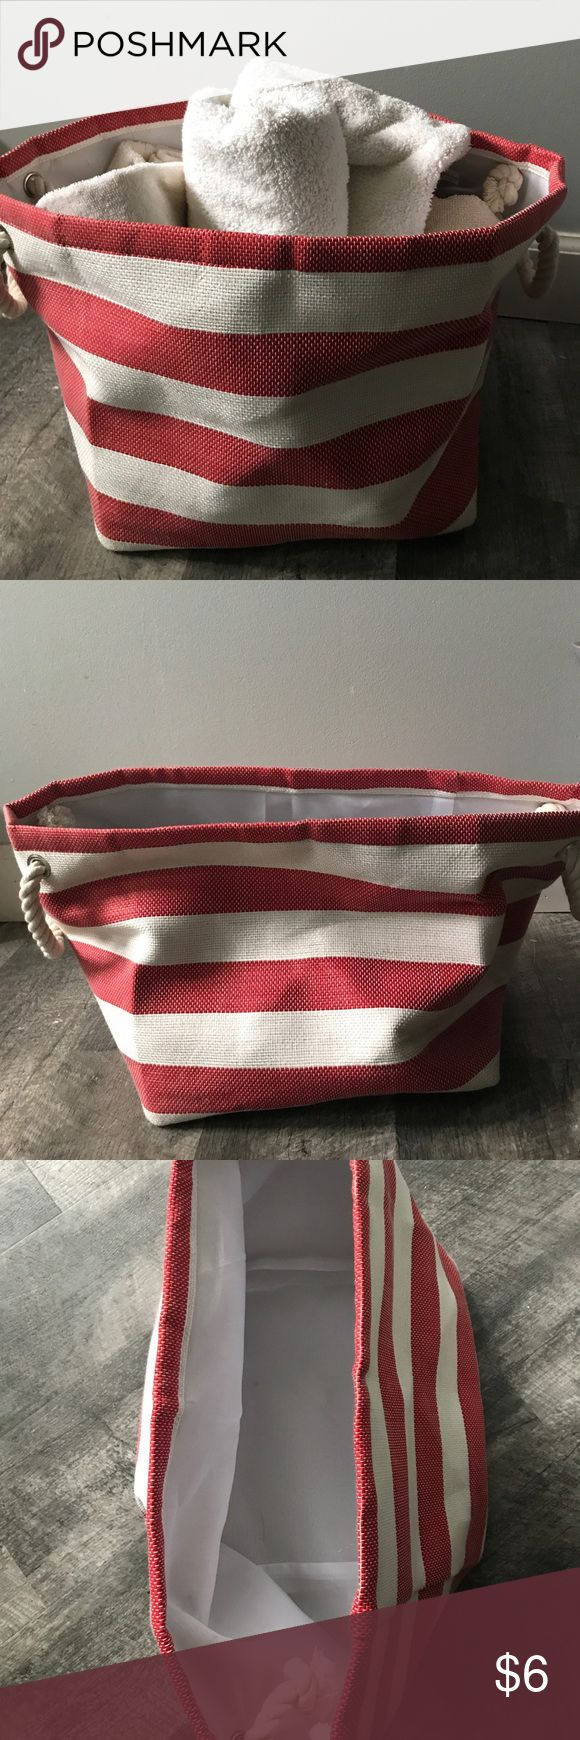 Utility Tote used for Beach or for Towel storage. Great color and coastal look to Bathroom or for the lake! Holds a lot of stuff and looks great as a honeymoon survival kit for shower present or can be used for baby shower gift to stow toiletries. Bags Totes